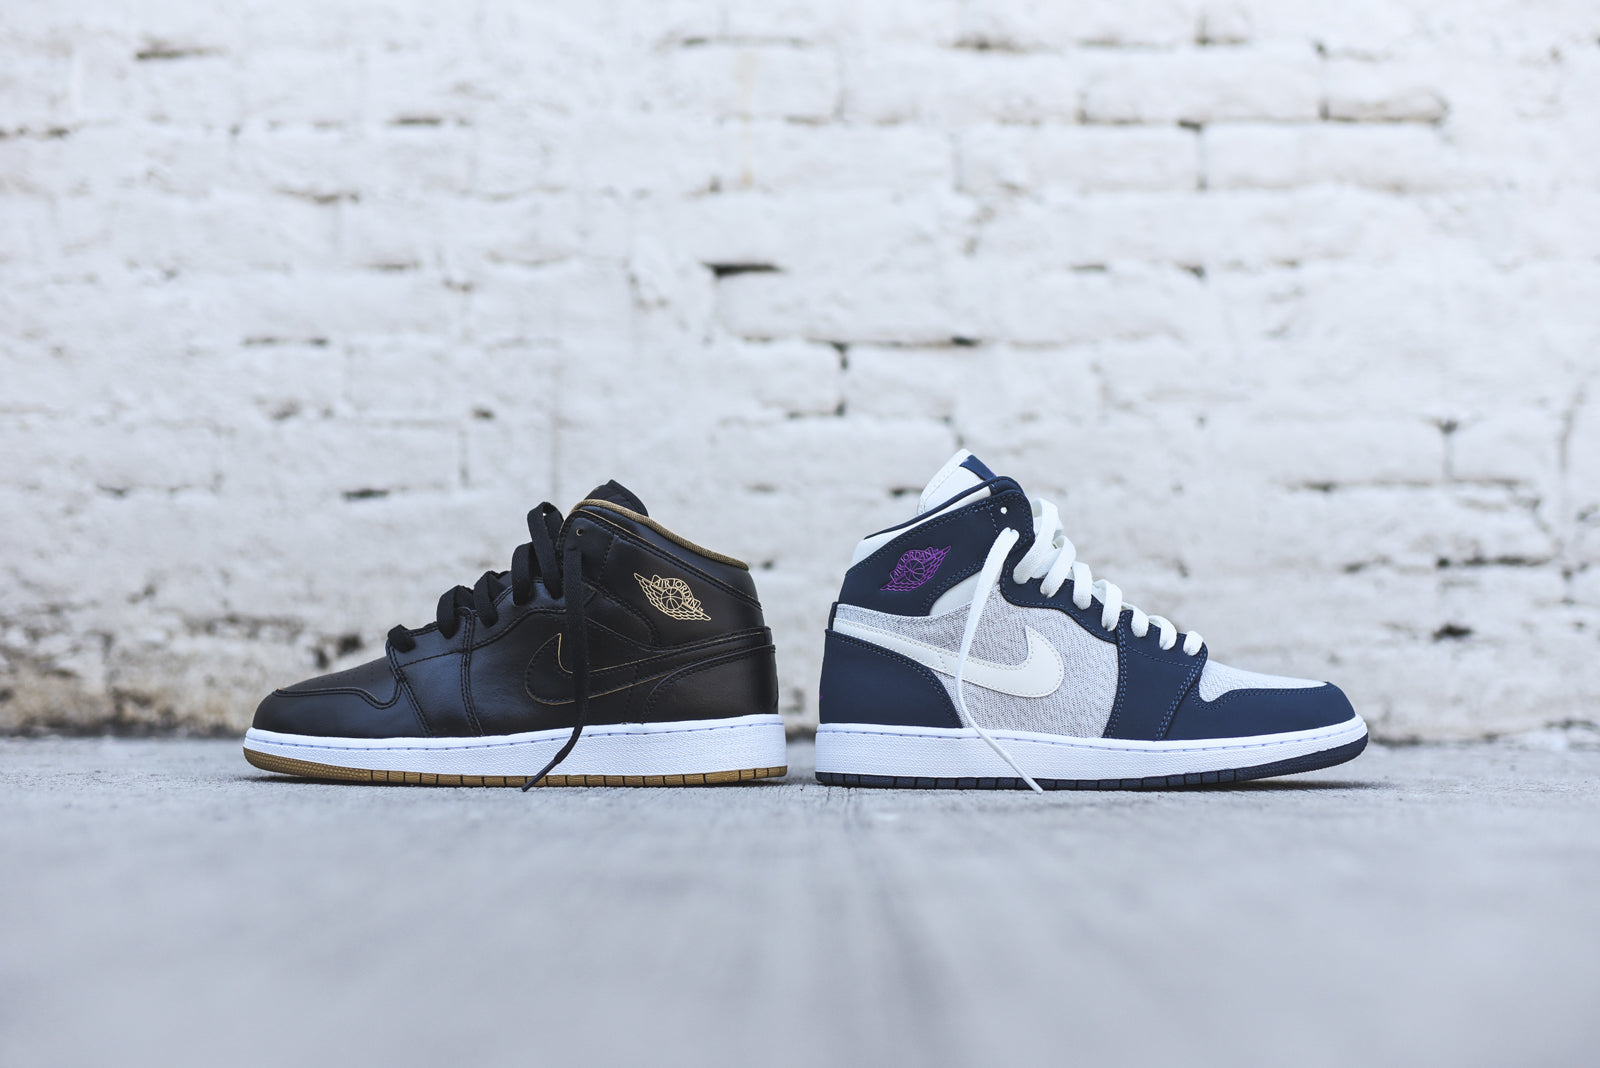 3211a89a4aa best sneakers 75f11 c62f7 nike air jordan 1 mid. available at kith ...